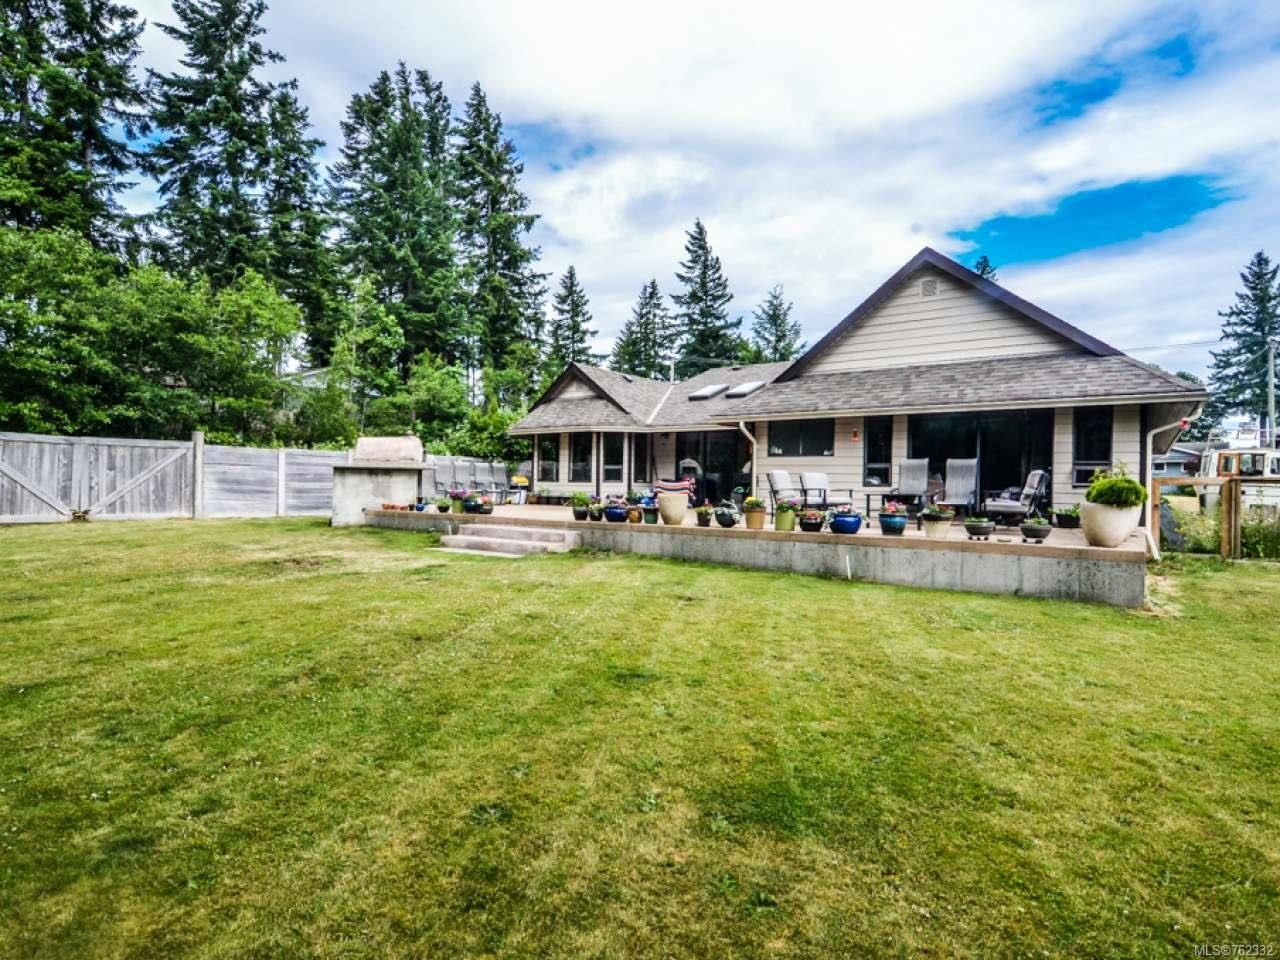 Photo 3: Photos: 1656 Galerno Rd in CAMPBELL RIVER: CR Campbell River Central House for sale (Campbell River)  : MLS®# 762332